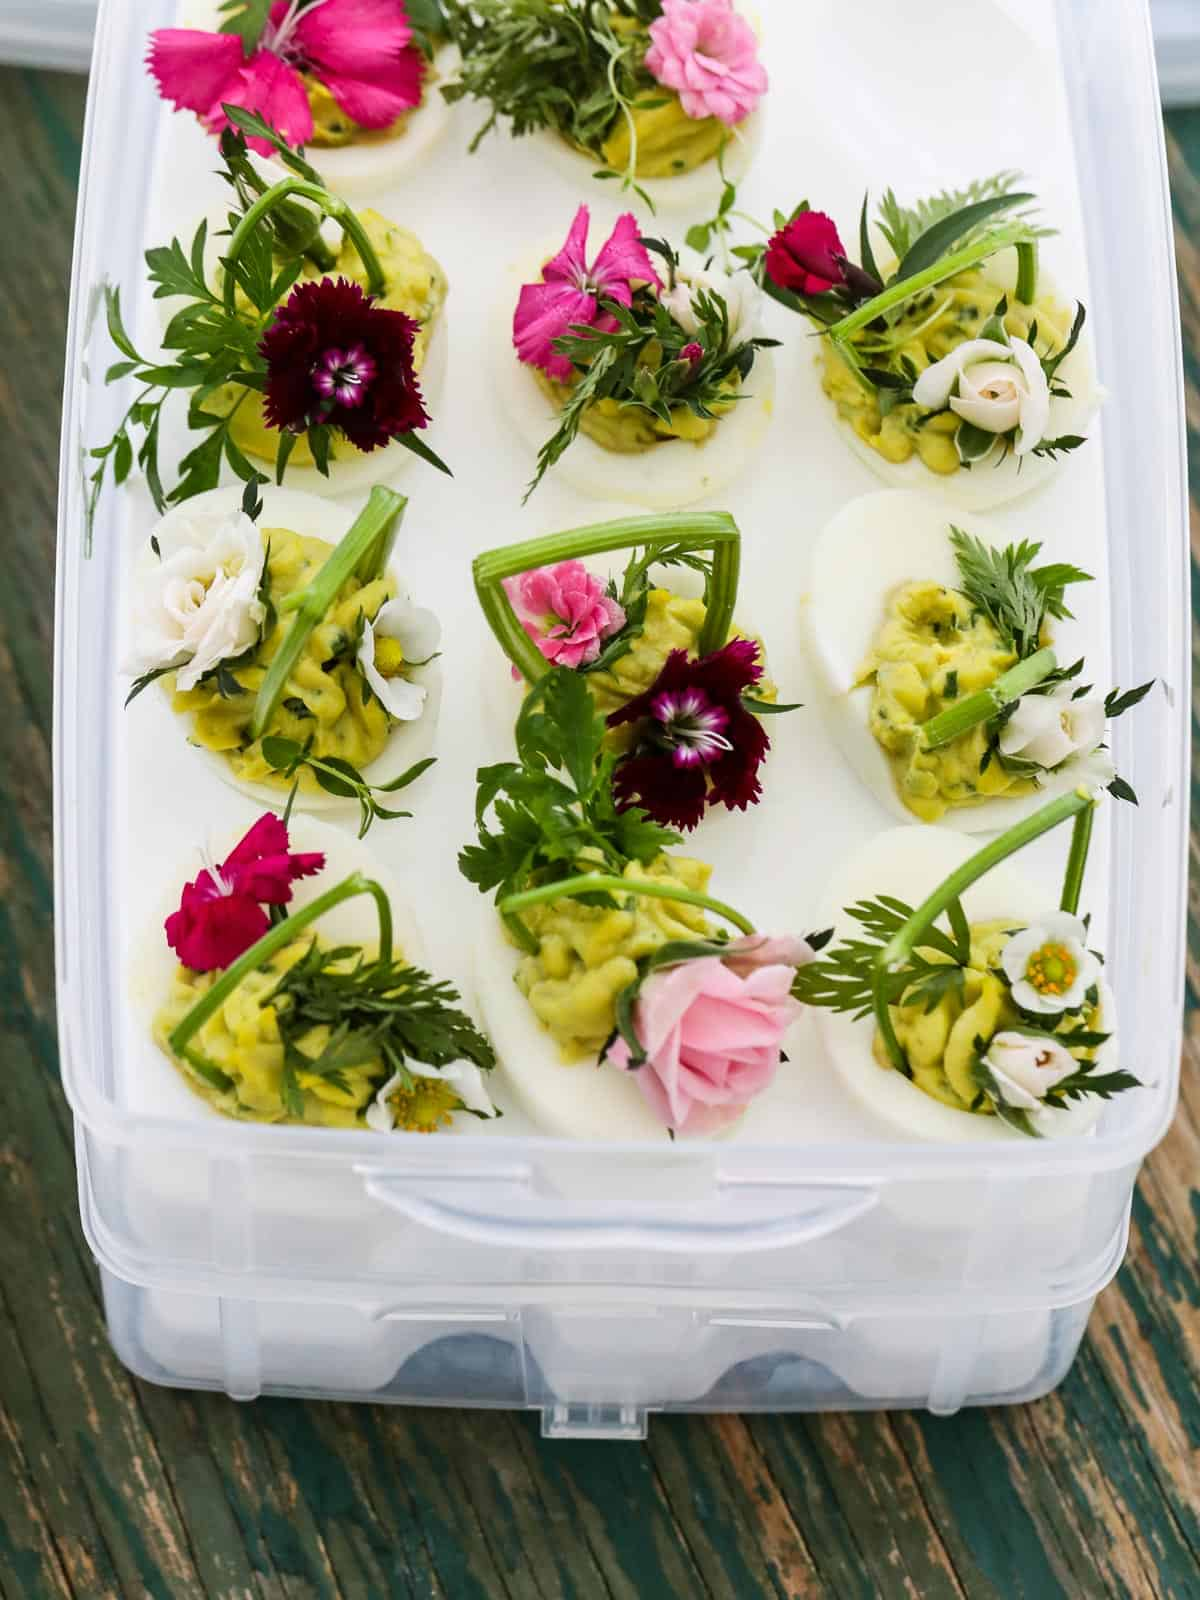 A plastic box designed to carry deviled eggs filled with Easter deviled eggs to take to a party.